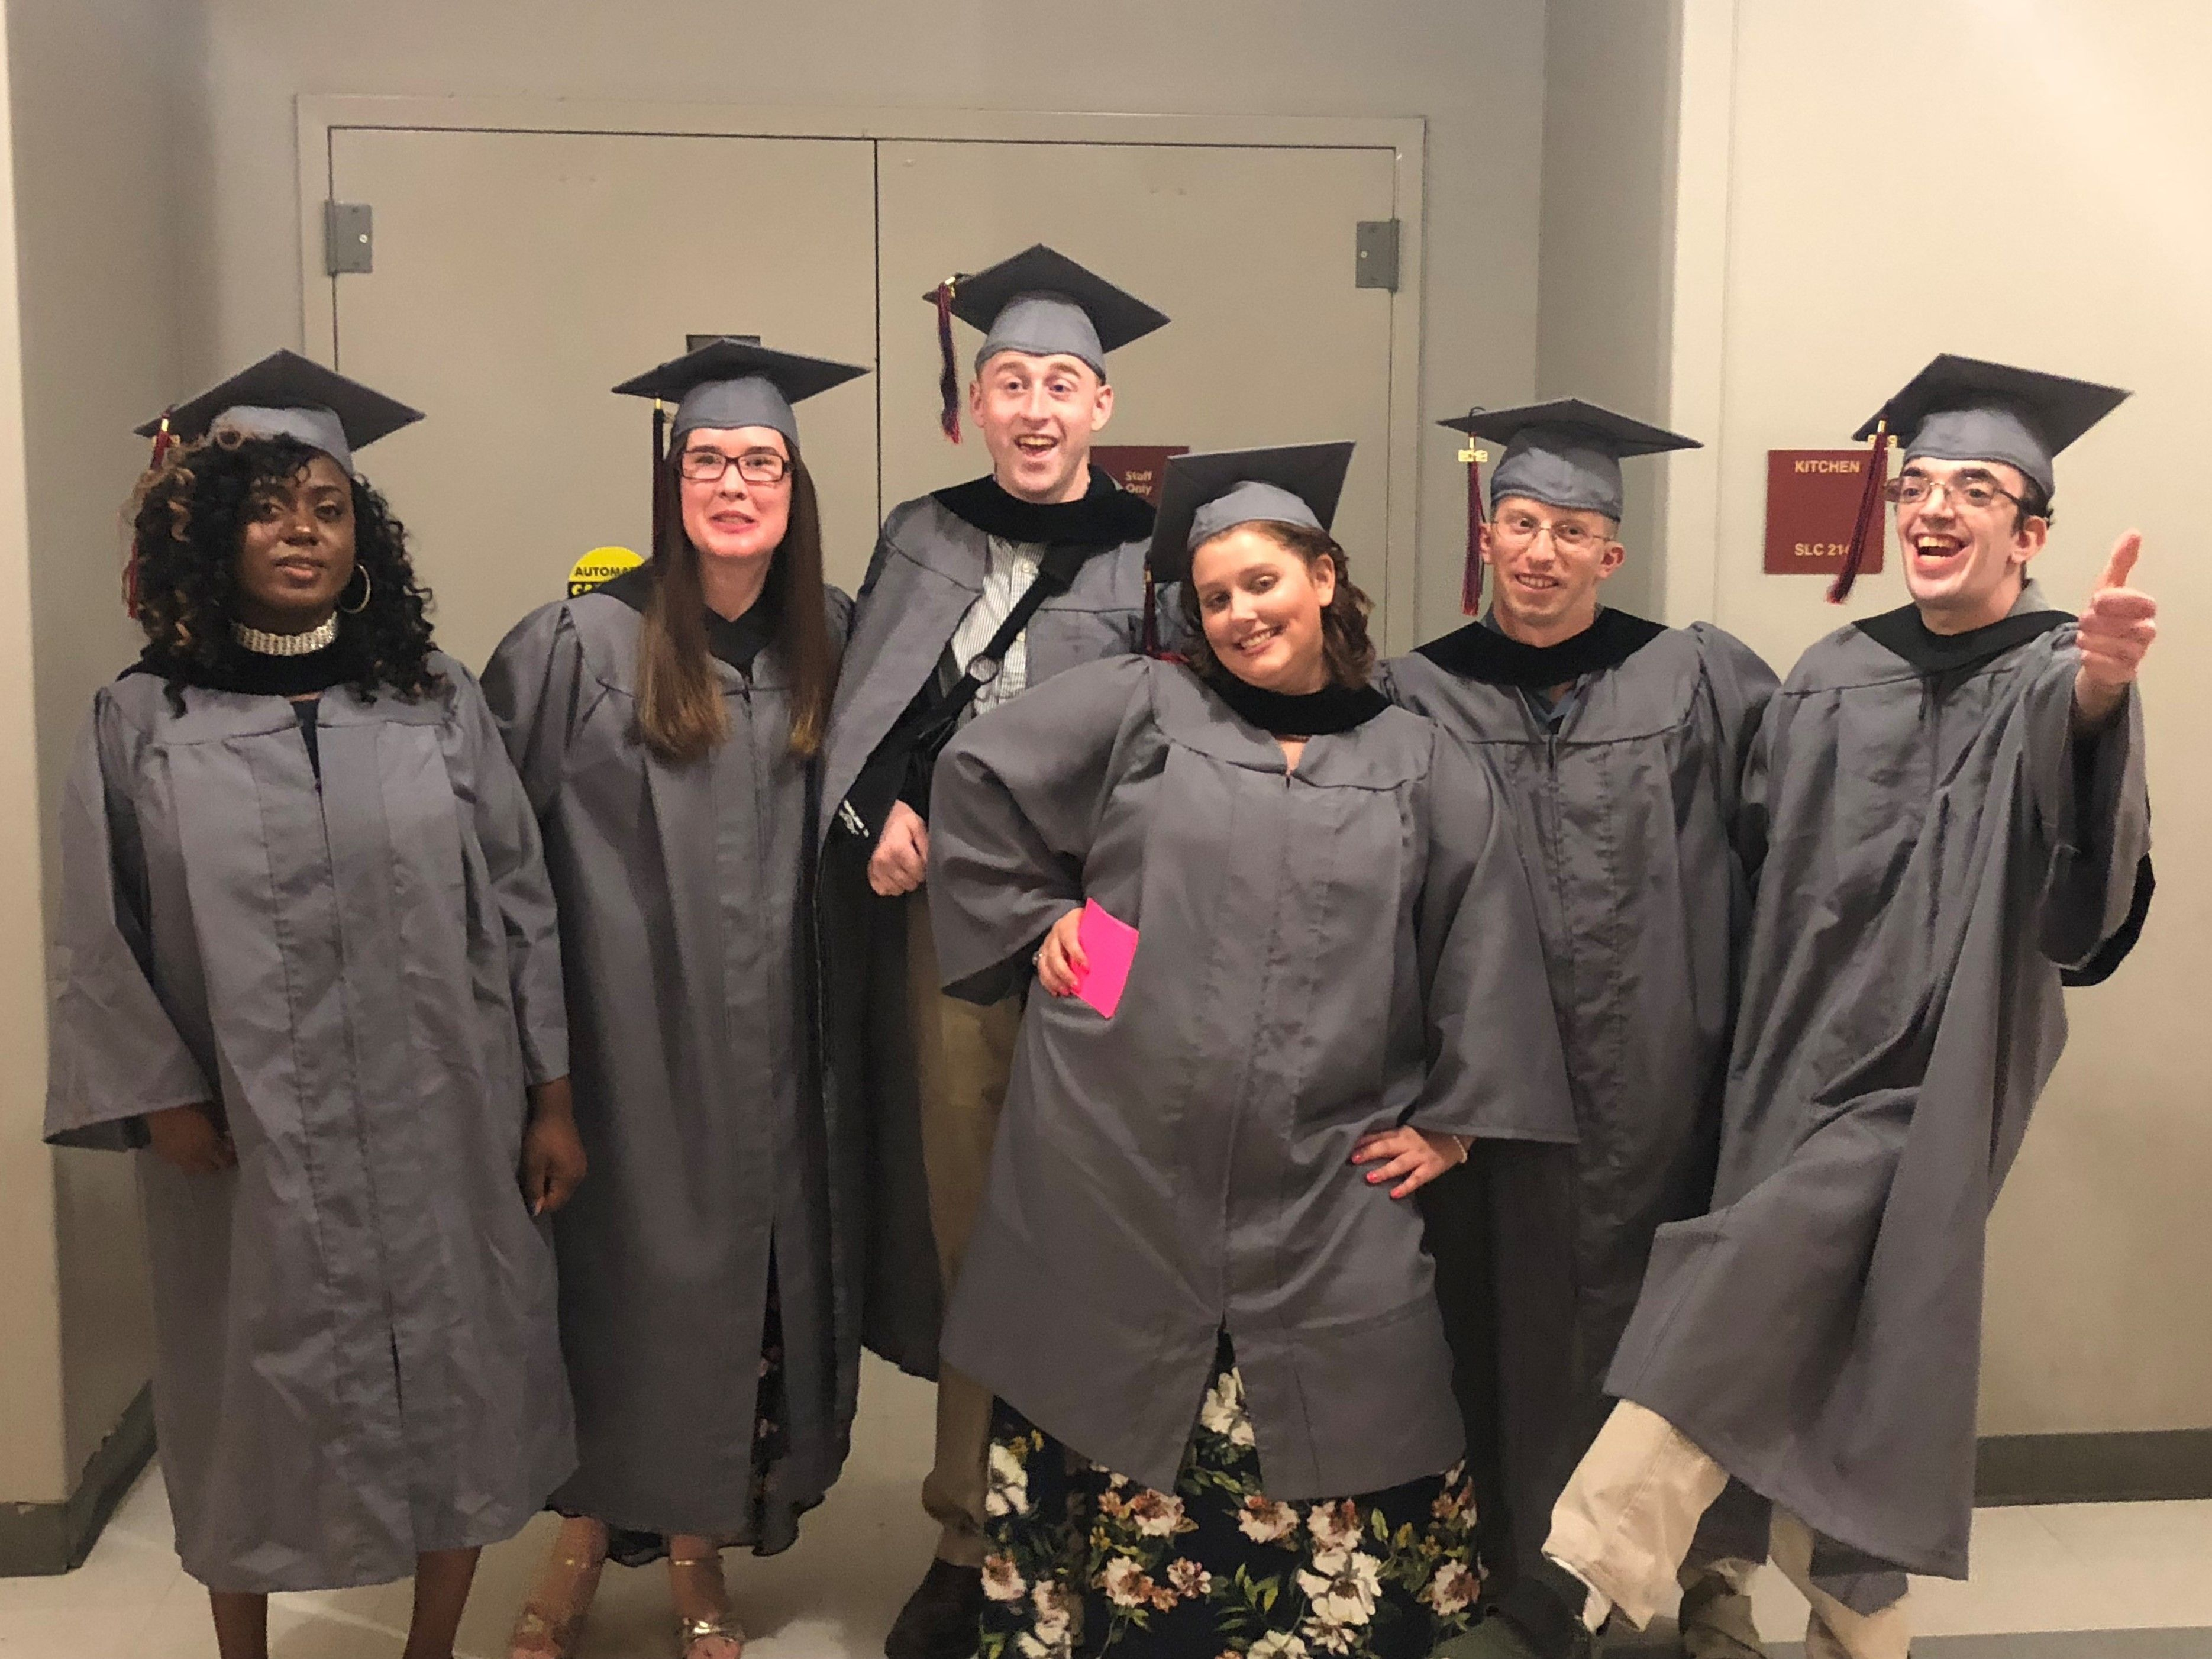 2019 Kach Graduates stand in cap and gown on graduation day.